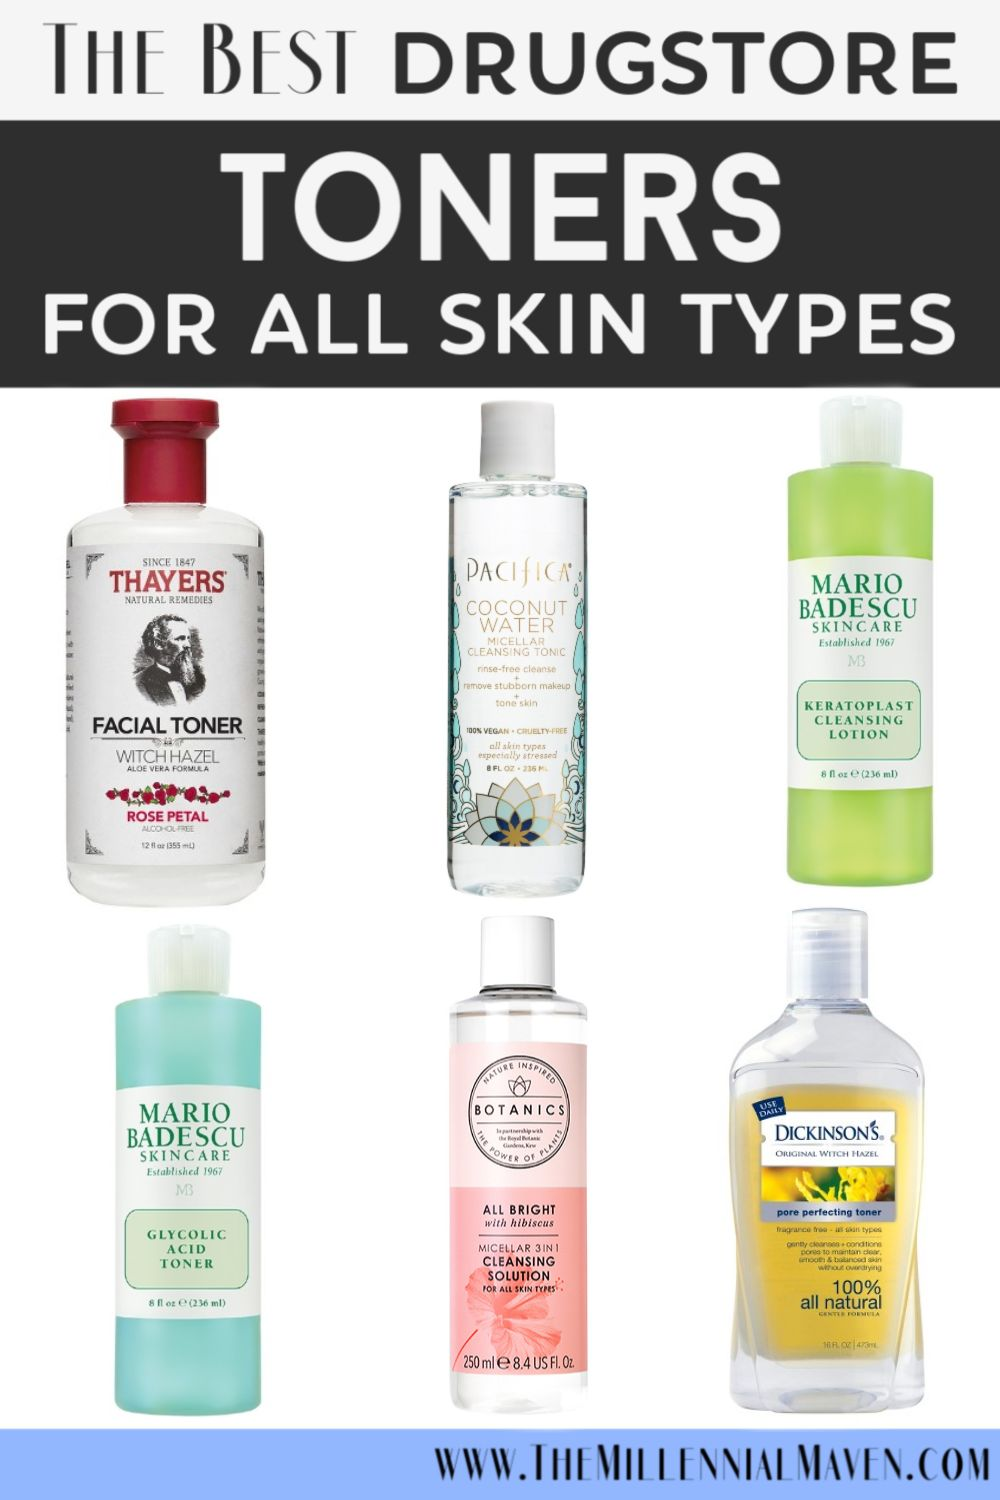 *UPDATED 2019!* The Best Drugstore Toners For All Skin Types! | Affordable Drugstore Skincare | The Millennial Maven